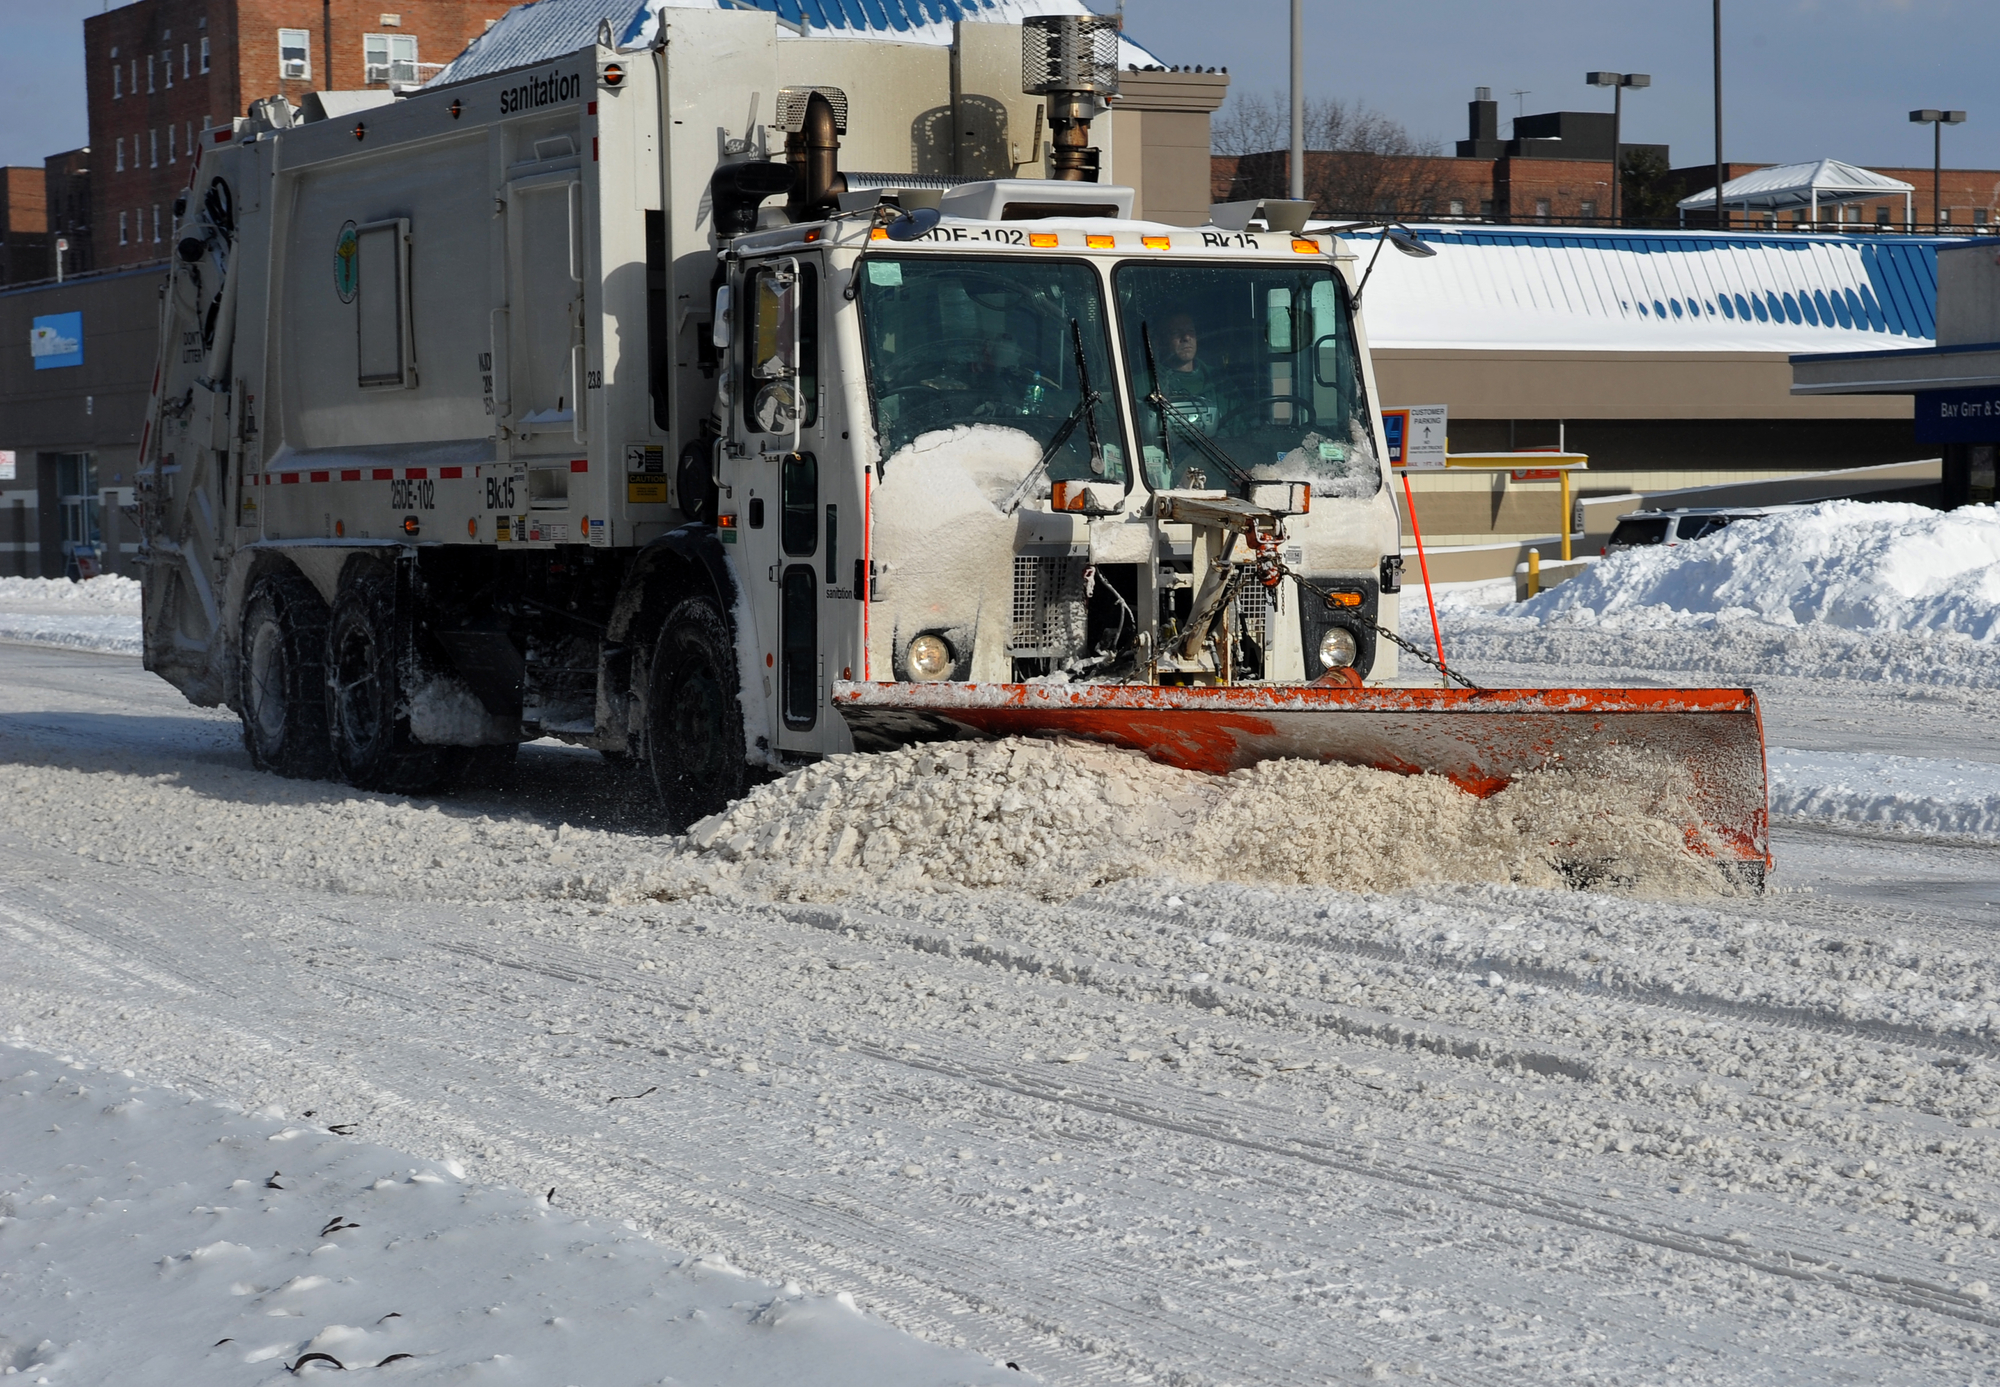 Snow Plow on City Street For How to prepare a TPO roof for winter